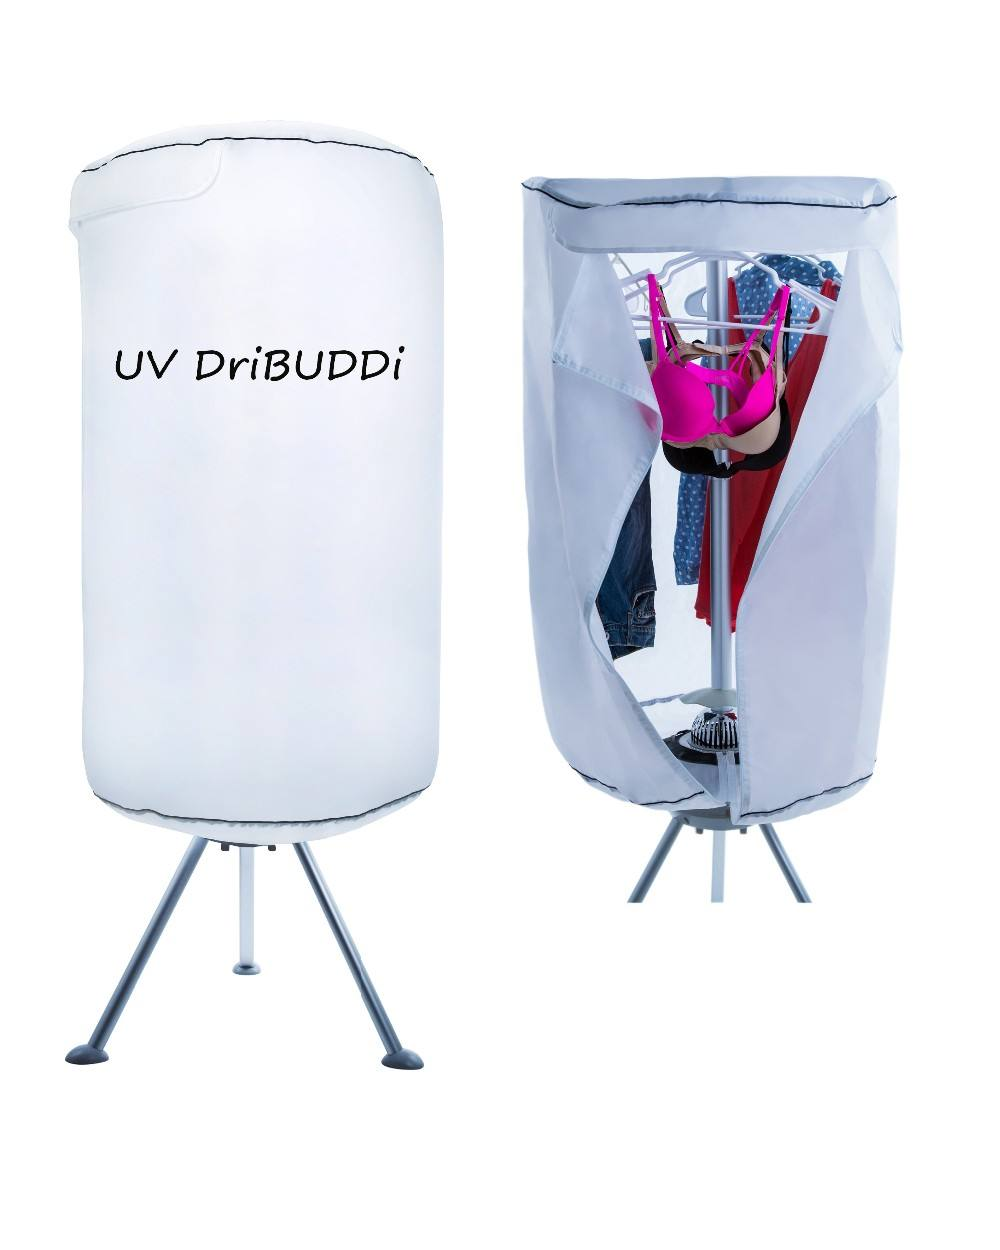 Round Portable Clothes Dryer